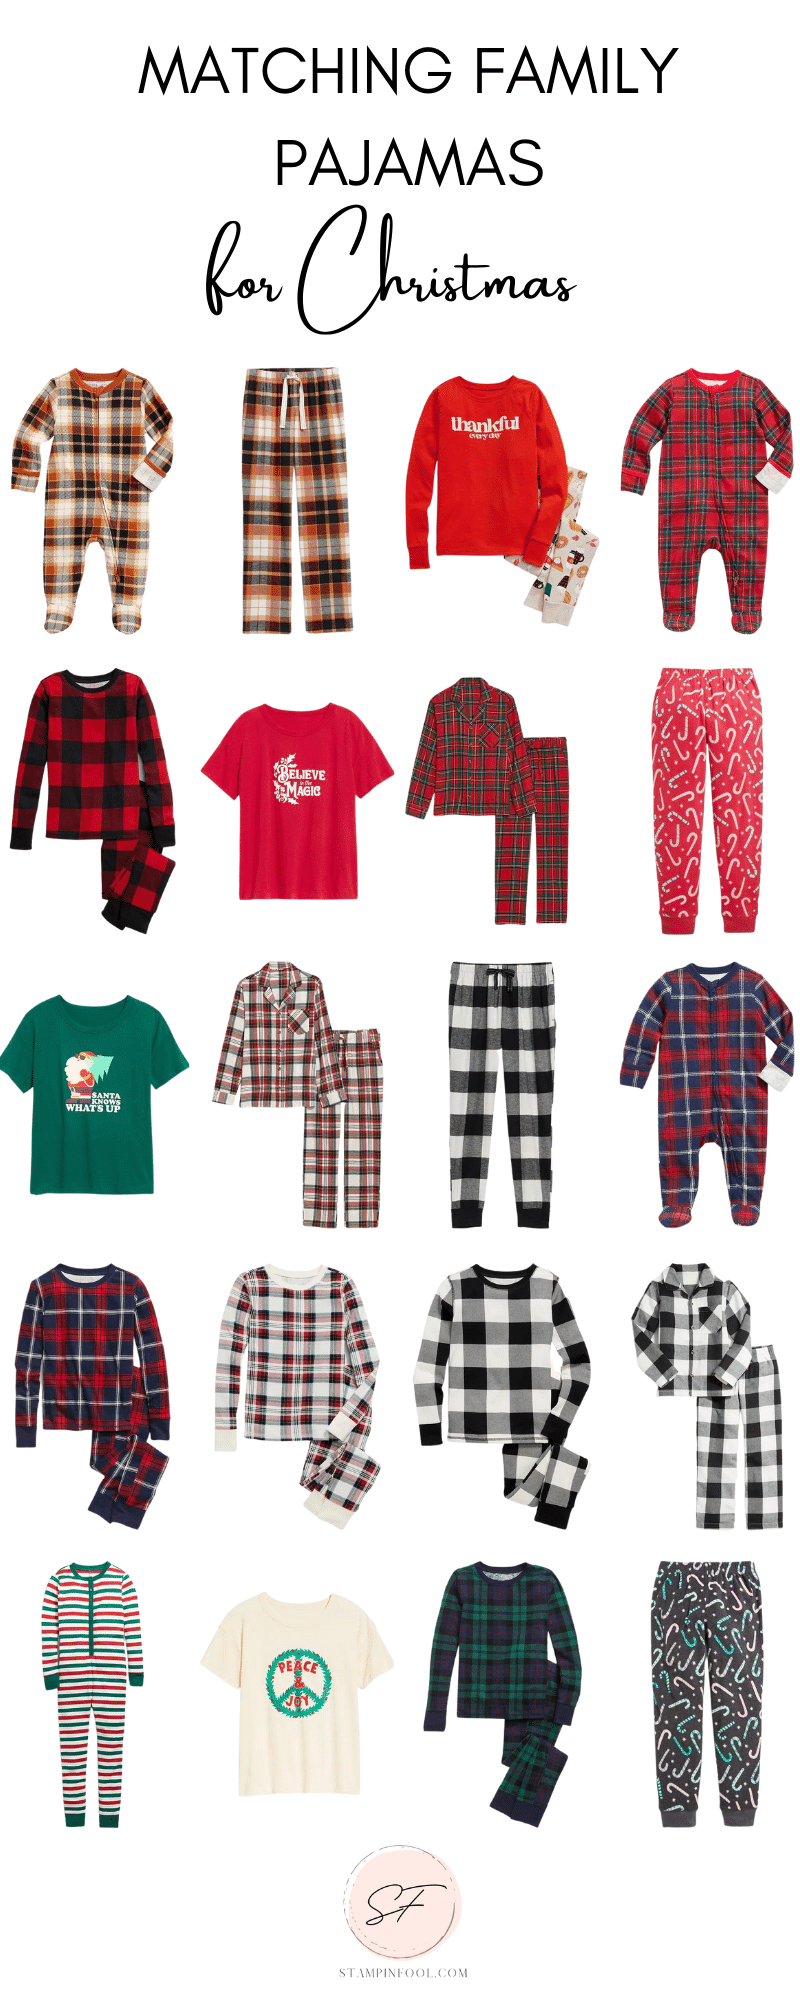 BEST CHRISTMAS MATCHING PAJAMAS FOR YOUR ENTIRE FAMILY - EVEN THE DOG